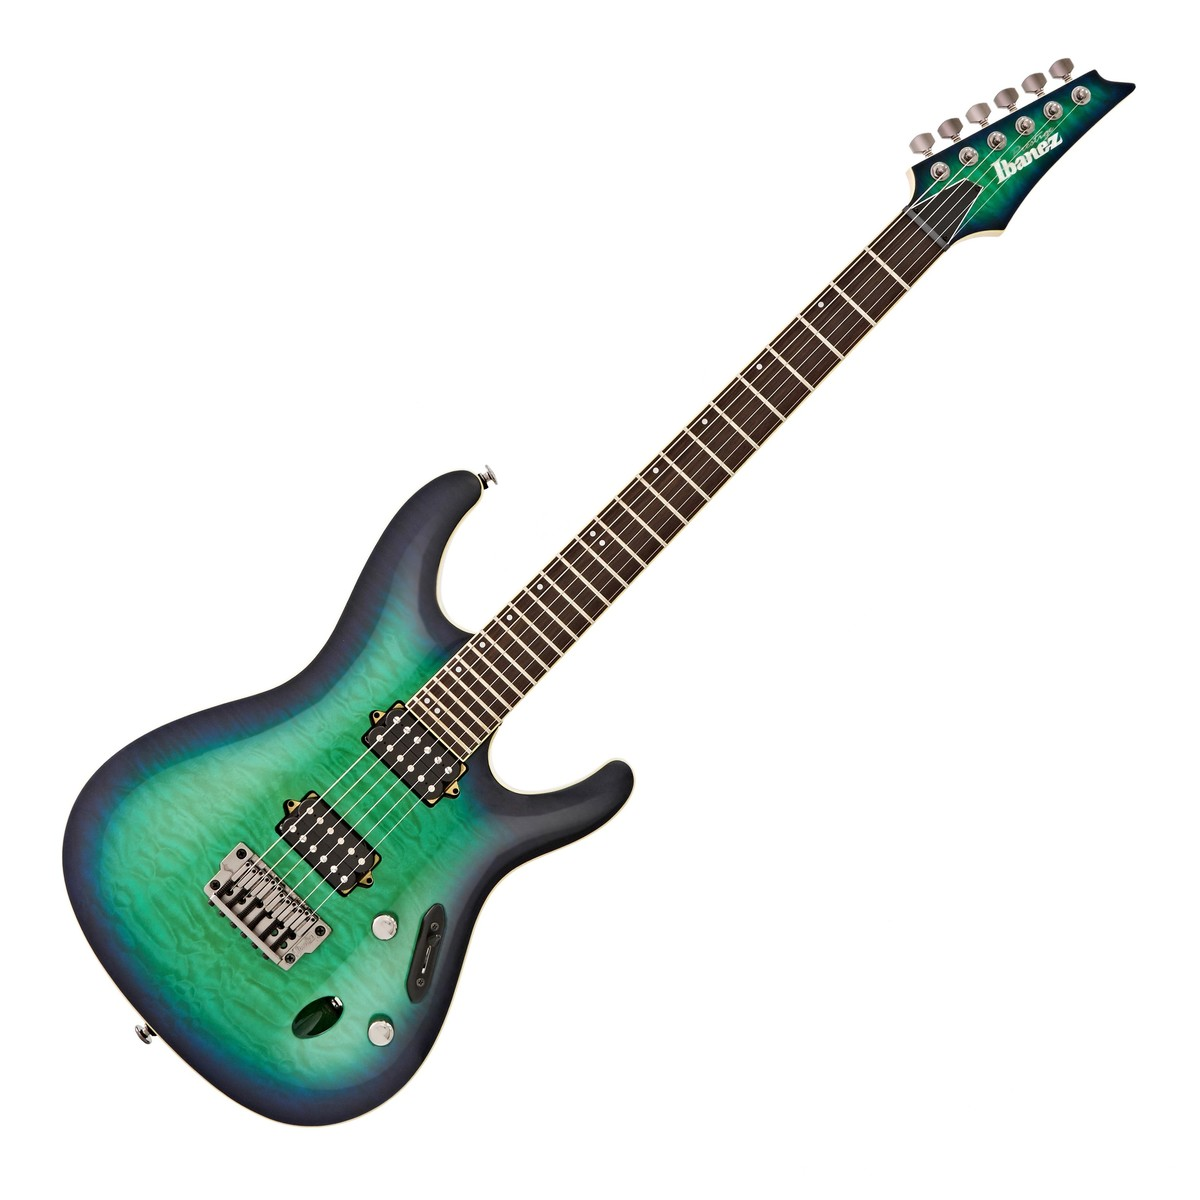 ibanez s6521q prestige surreal blue burst at gear4music. Black Bedroom Furniture Sets. Home Design Ideas